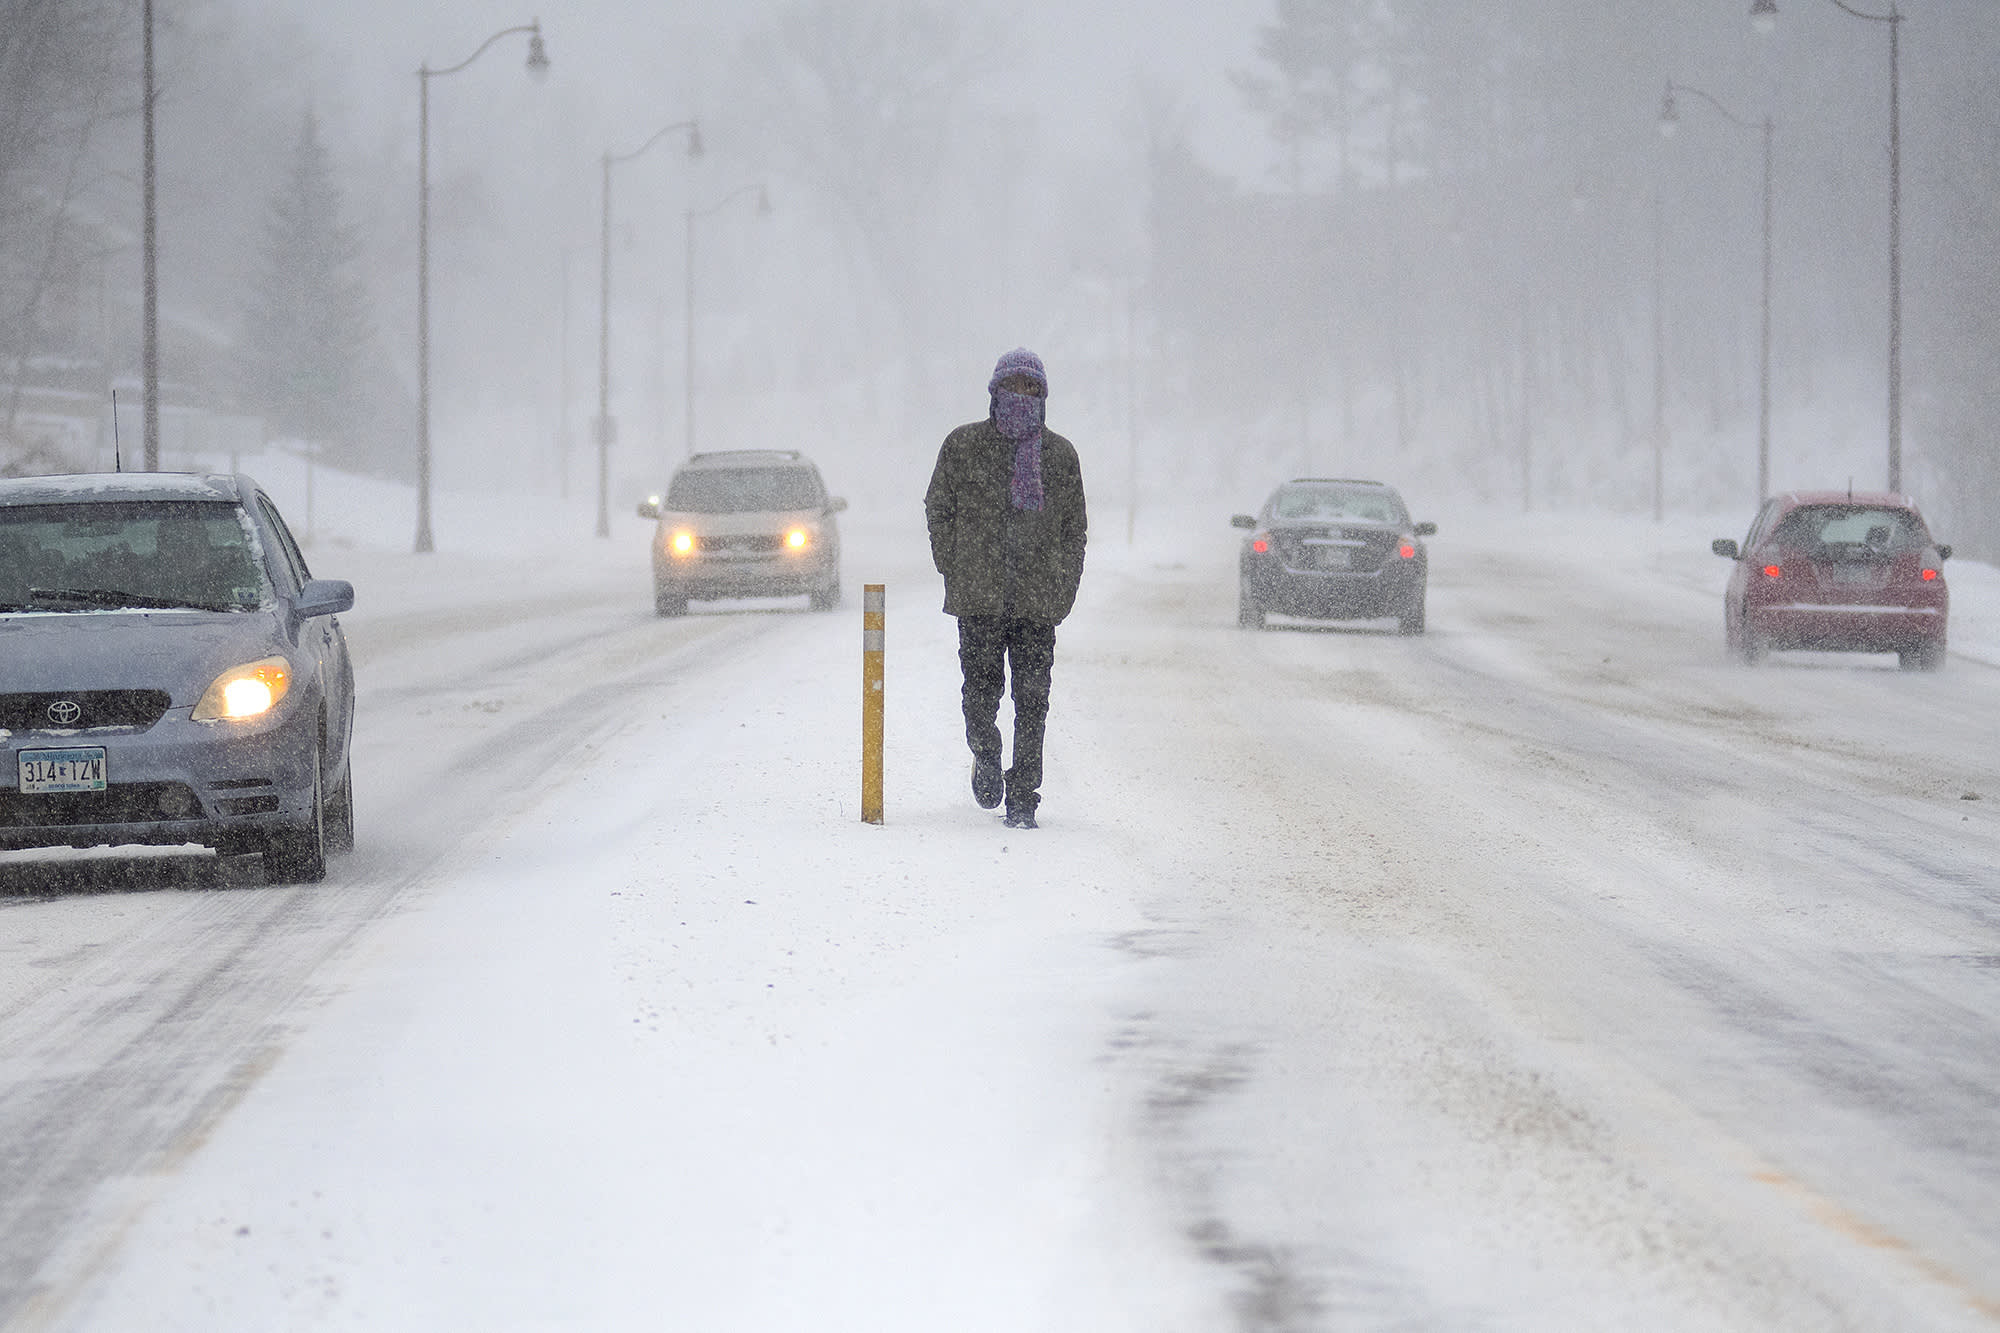 Winter storm sweeps Midwest and Northeast, bringing snow and ice